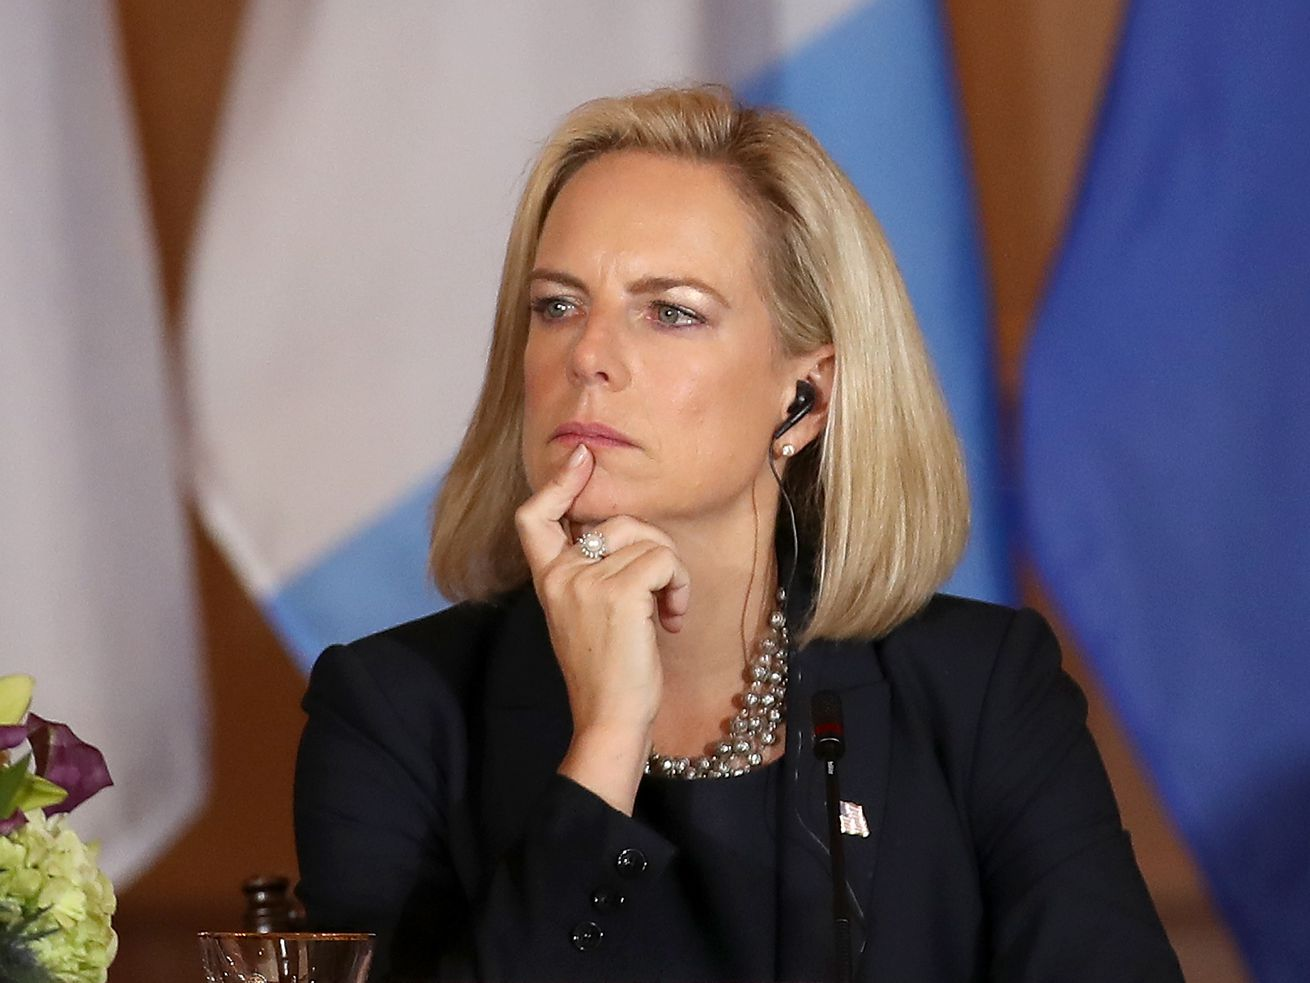 Homeland Security Secretary Kirstjen Nielsen looks on during the Conference for Prosperity and Security in Central America on October 11, 2018, in Washington, DC.